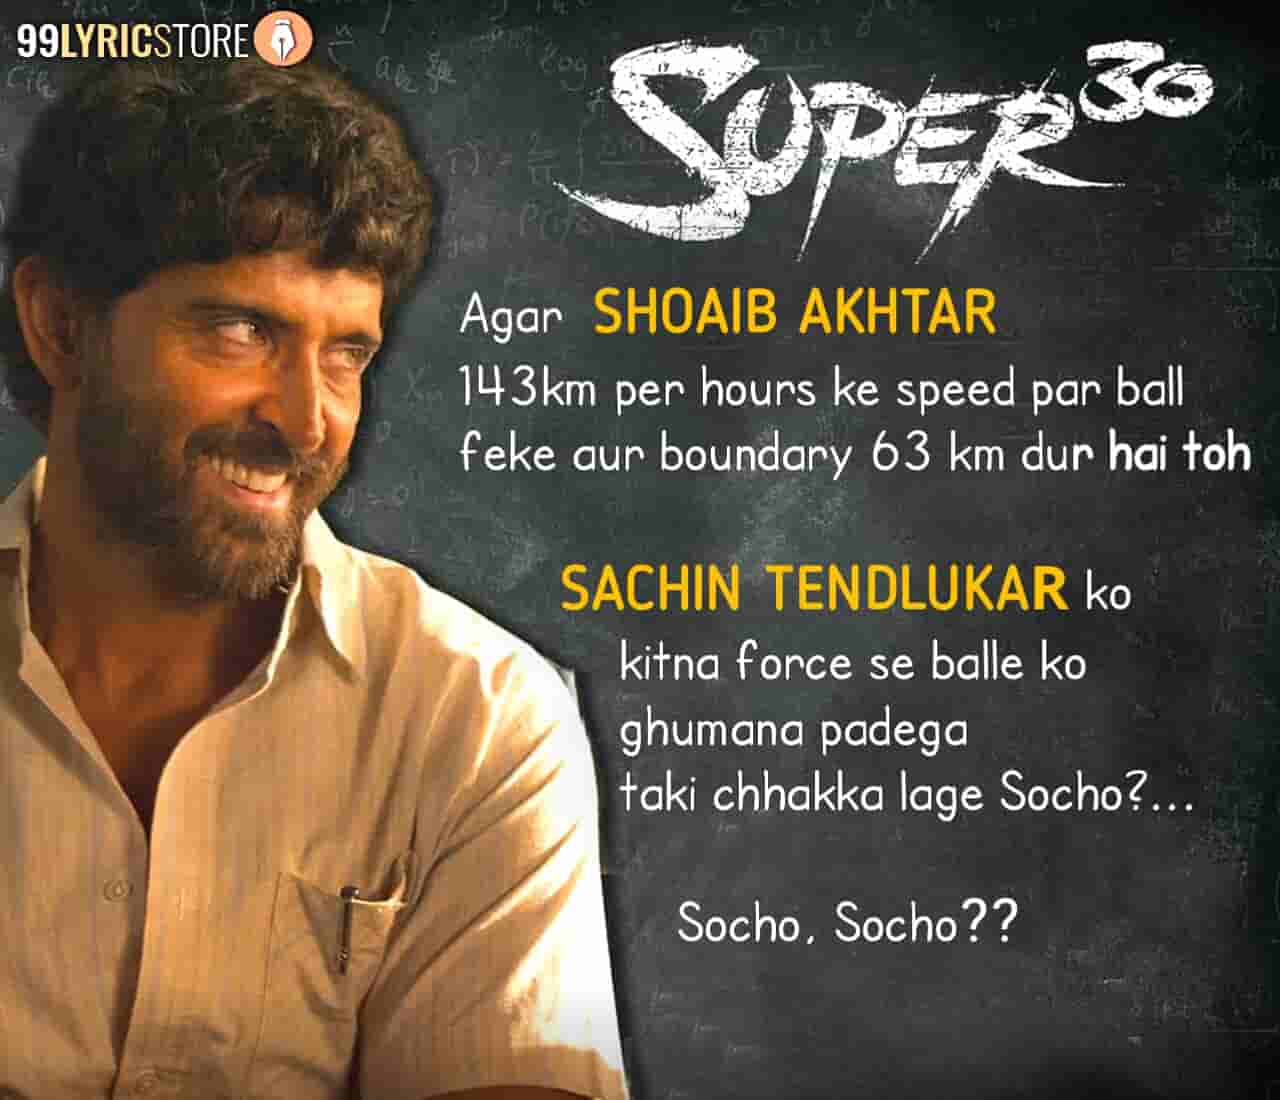 Super30 movie dialogues and lyrics written by amitabh bhattacharya and sung by Hrithik Roshan